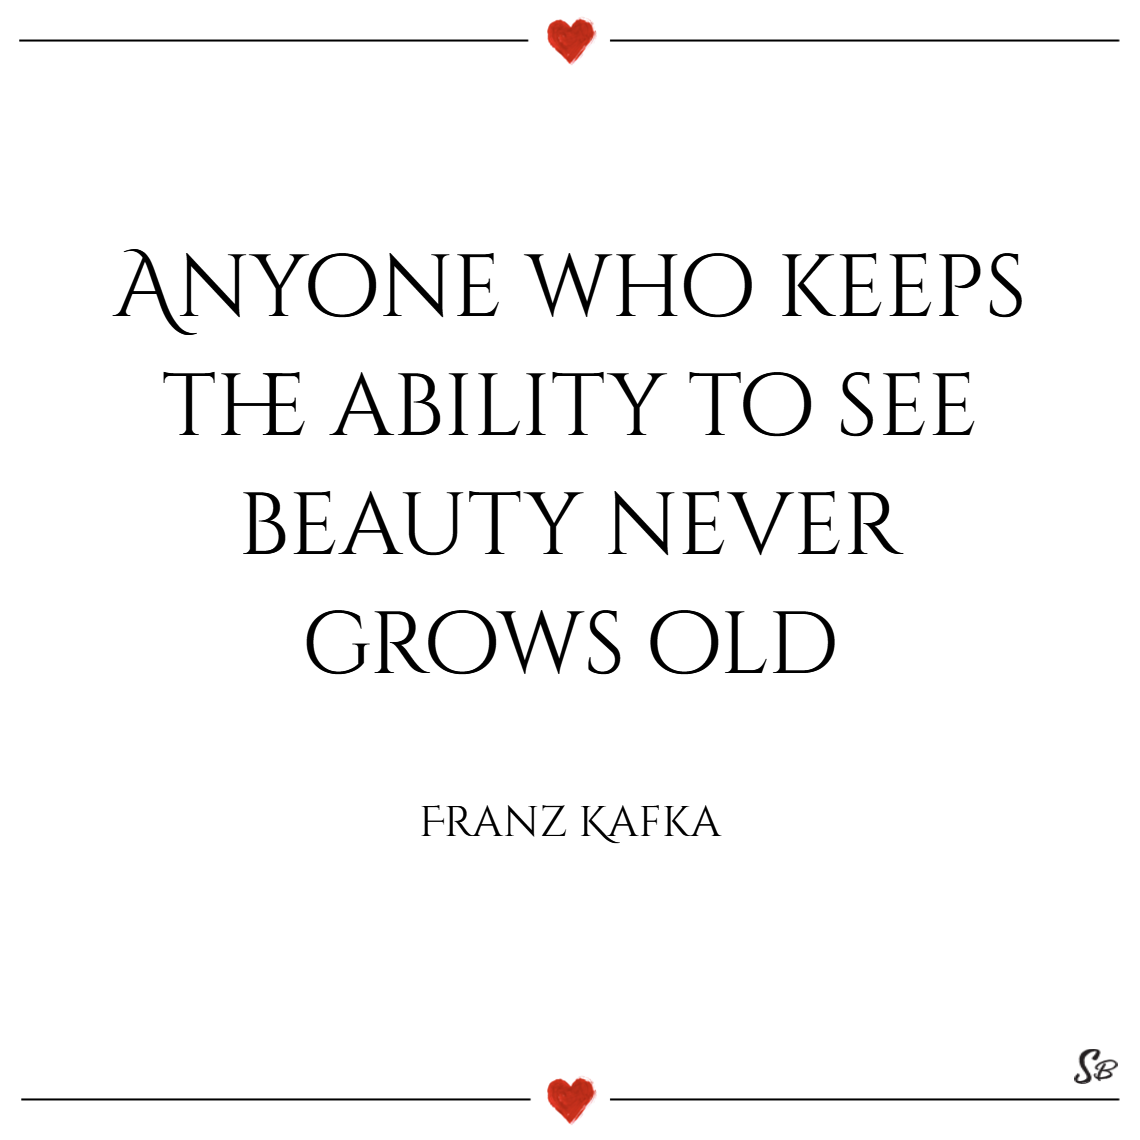 Anyone who keeps the ability to see beauty never grows old. – franz kafka